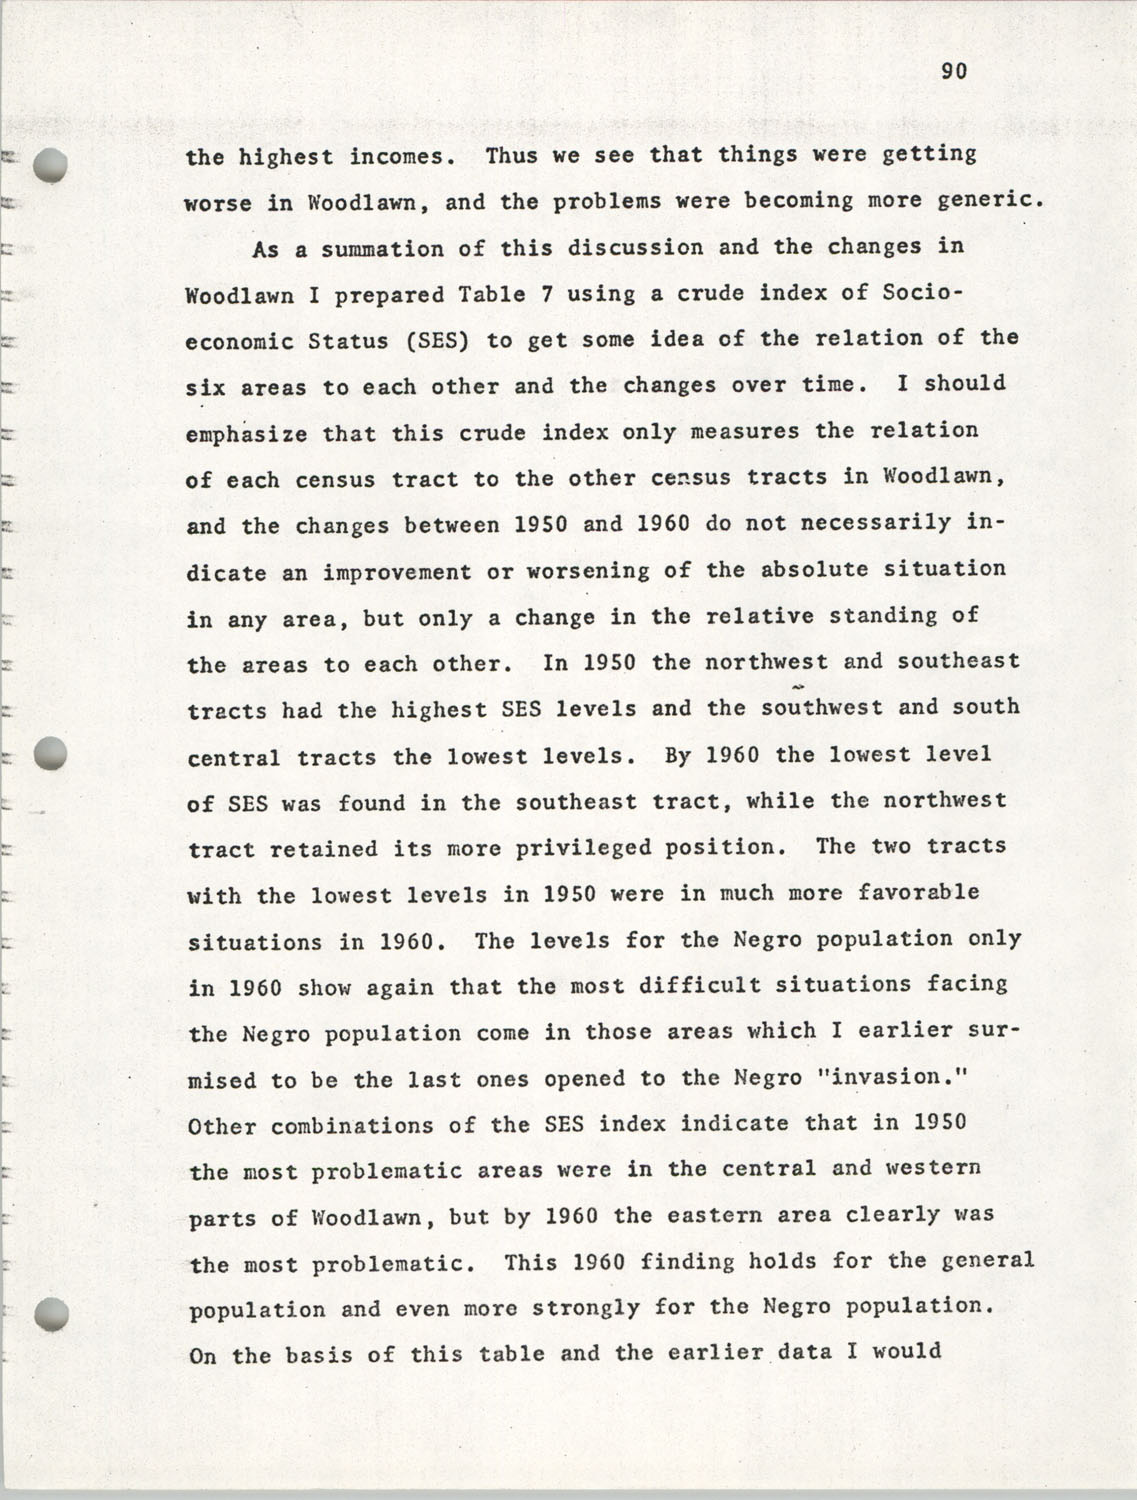 Citizen Participation. Democracy and Social Change, December 1, 1969, Page 90